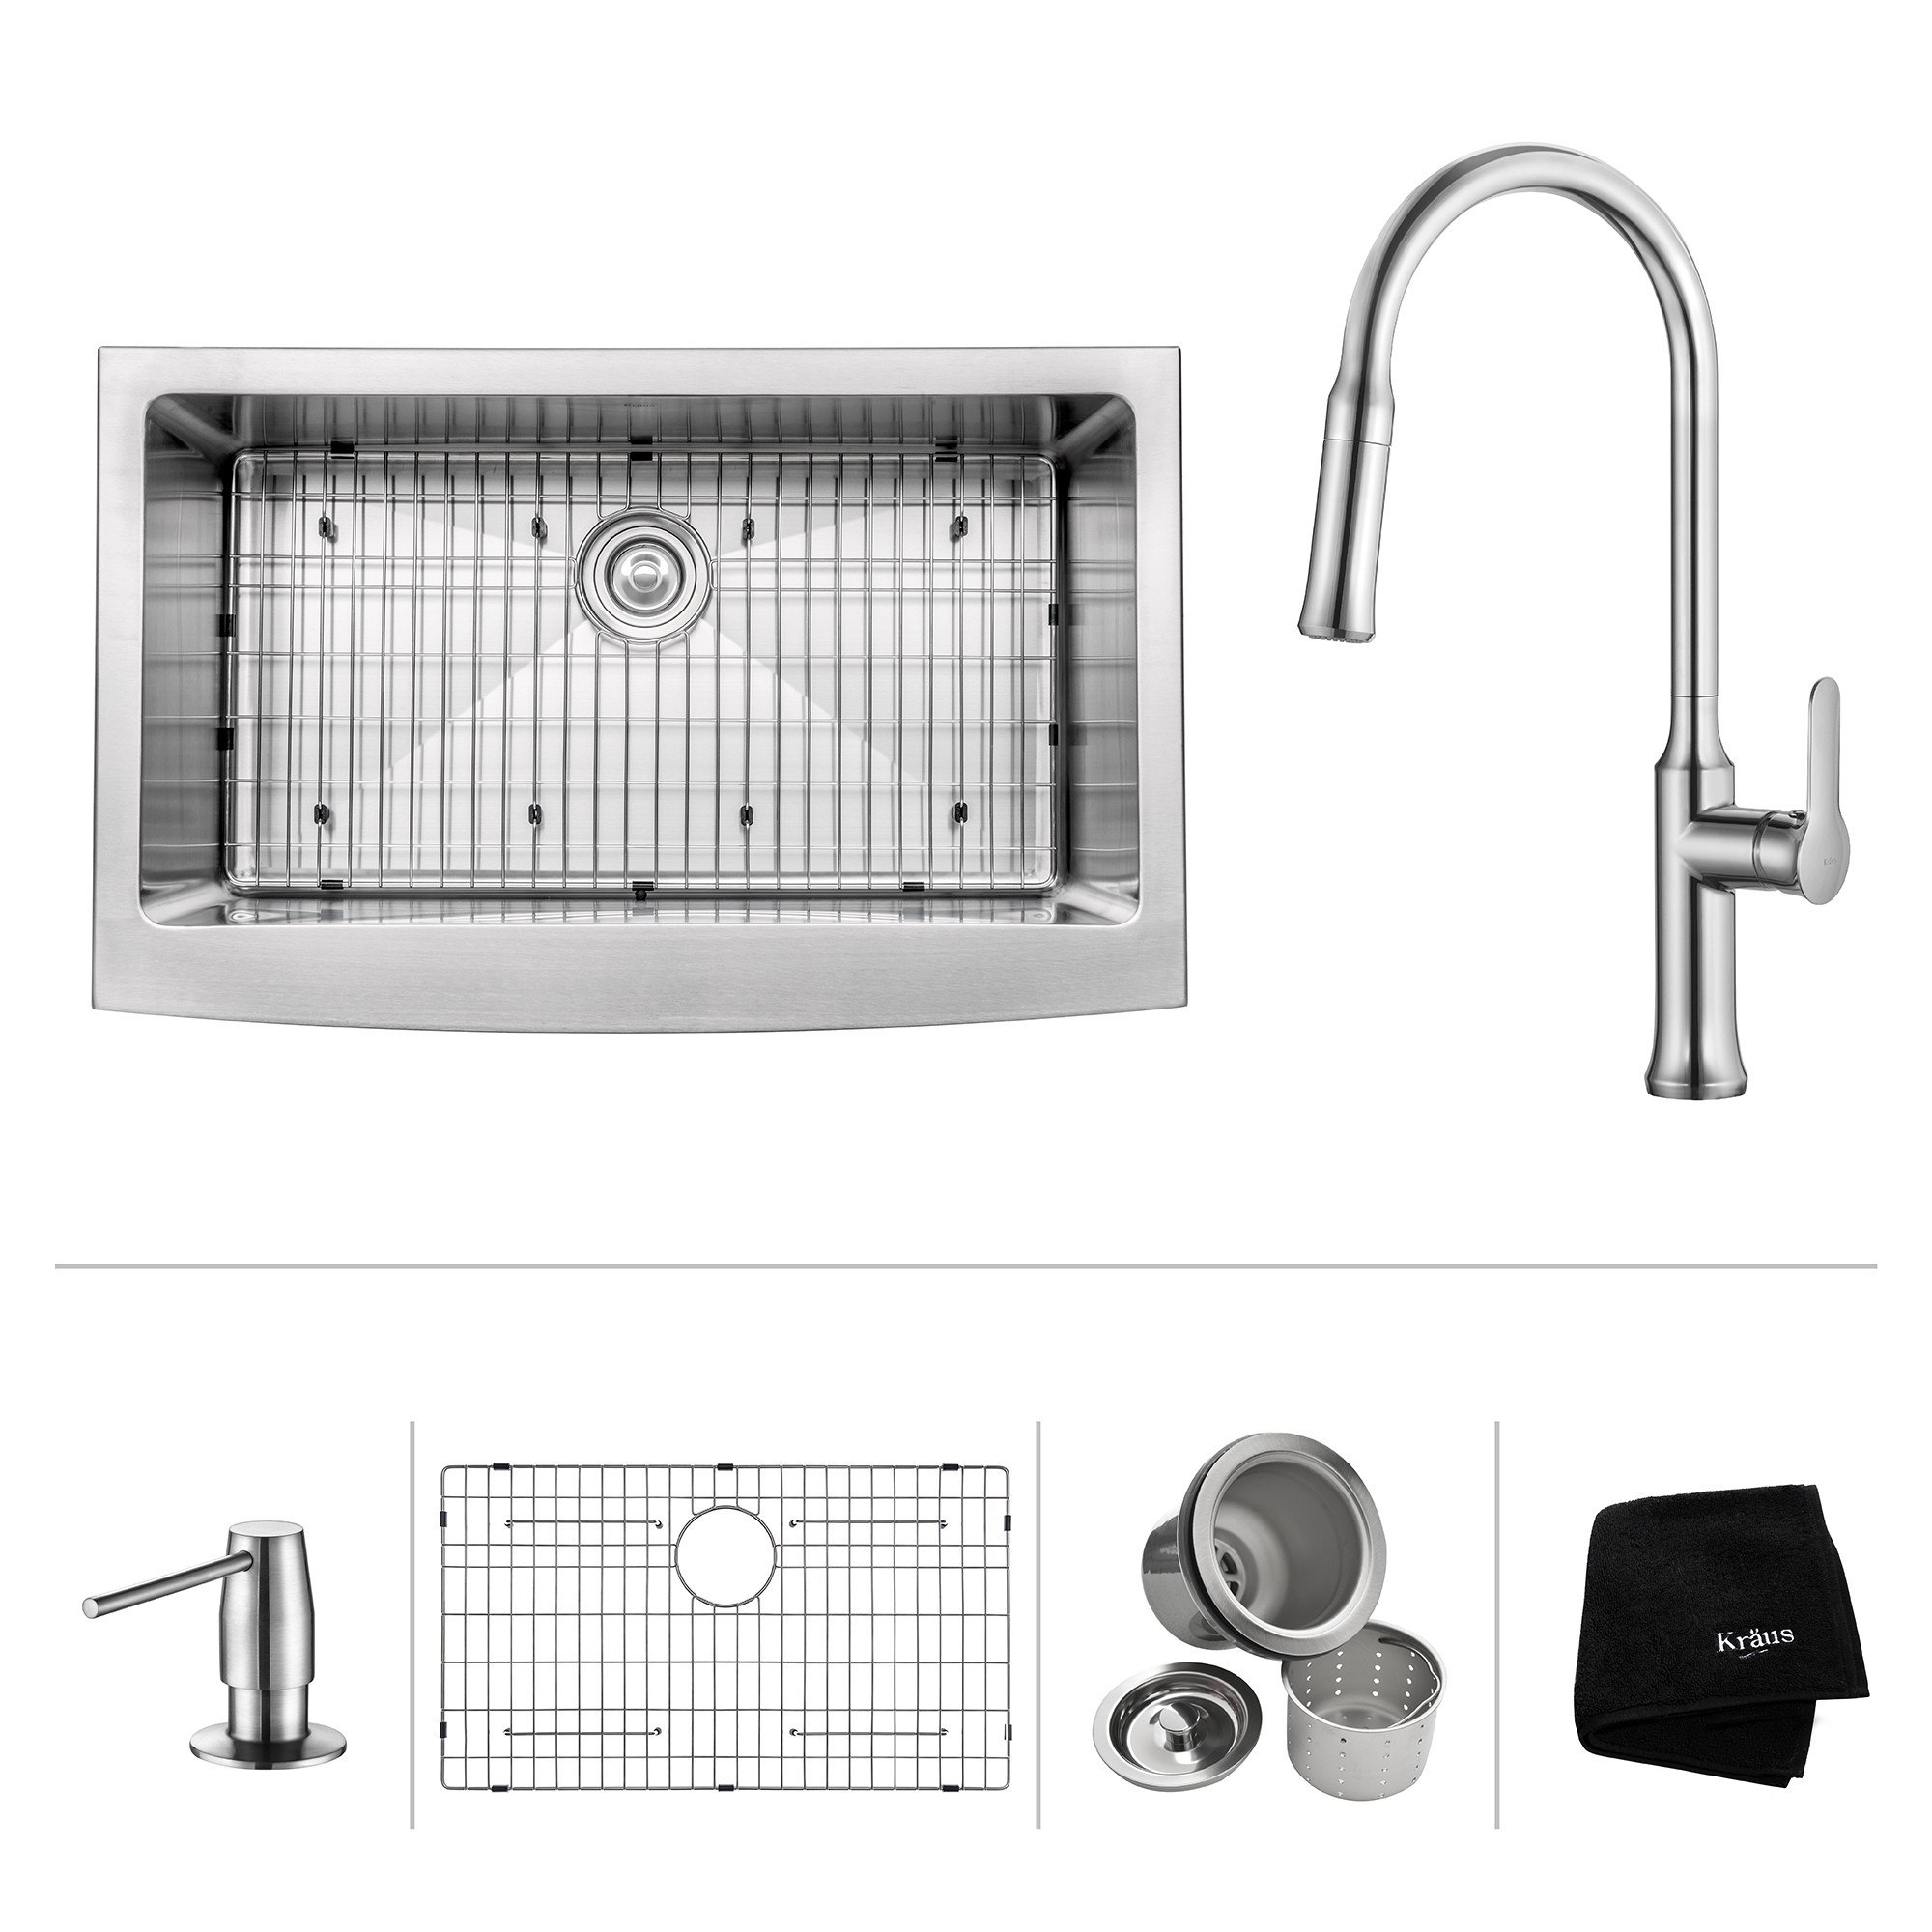 Kraus KHF200-33-1630-42 33 Inch Apron Front Single Bowl Stainless Steel Sink with Pull Down Faucet & Soap Dispenser